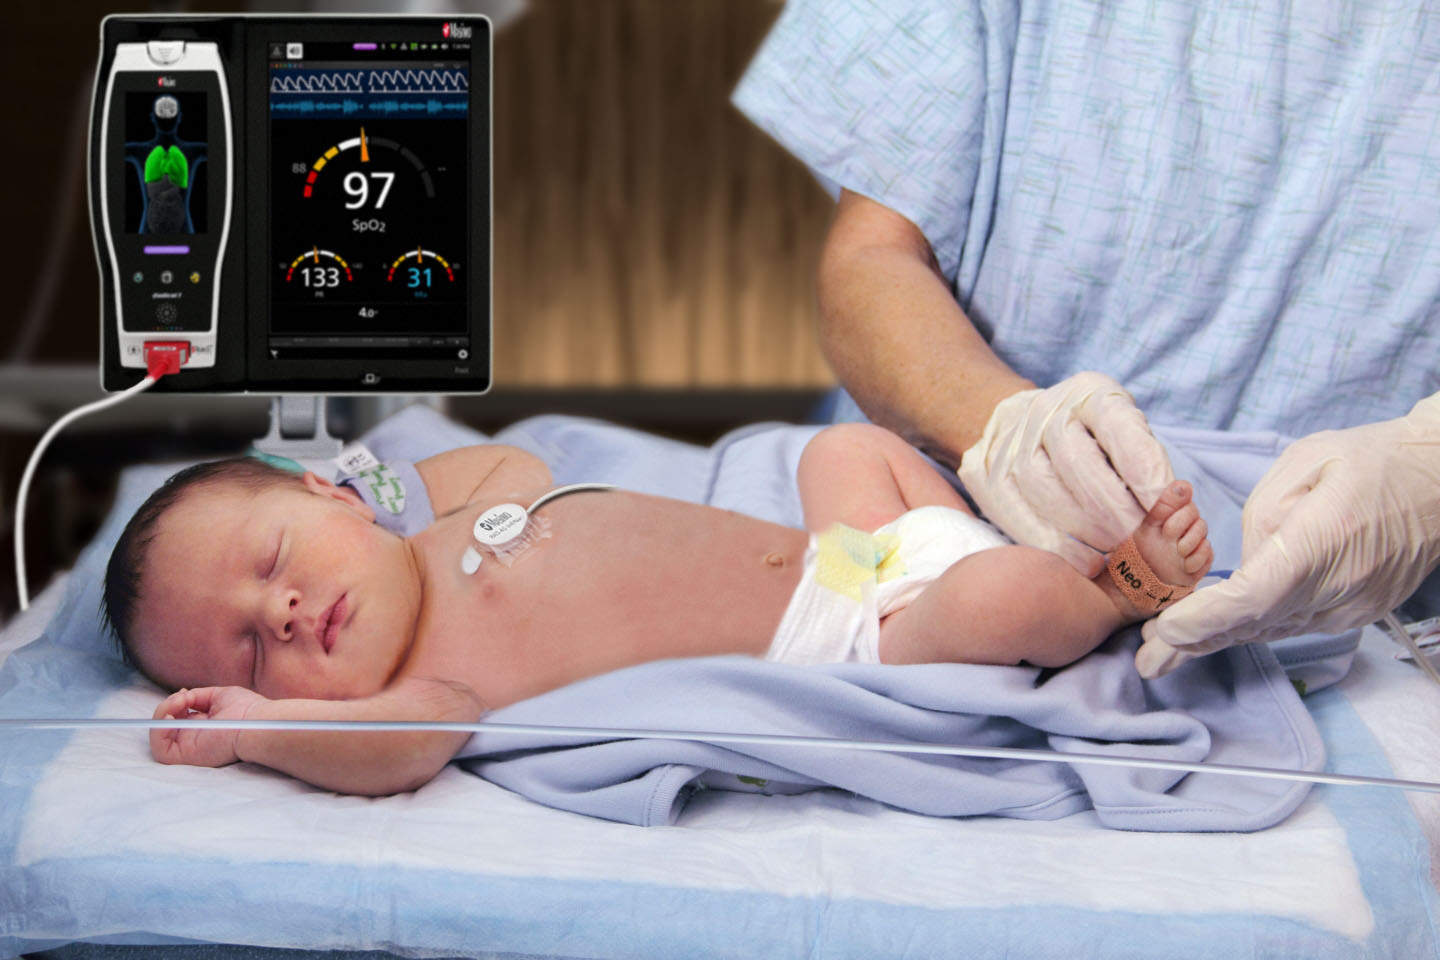 FDA approves Masimo's rainbow acoustic monitoring RAS-45 sensor for infant patients